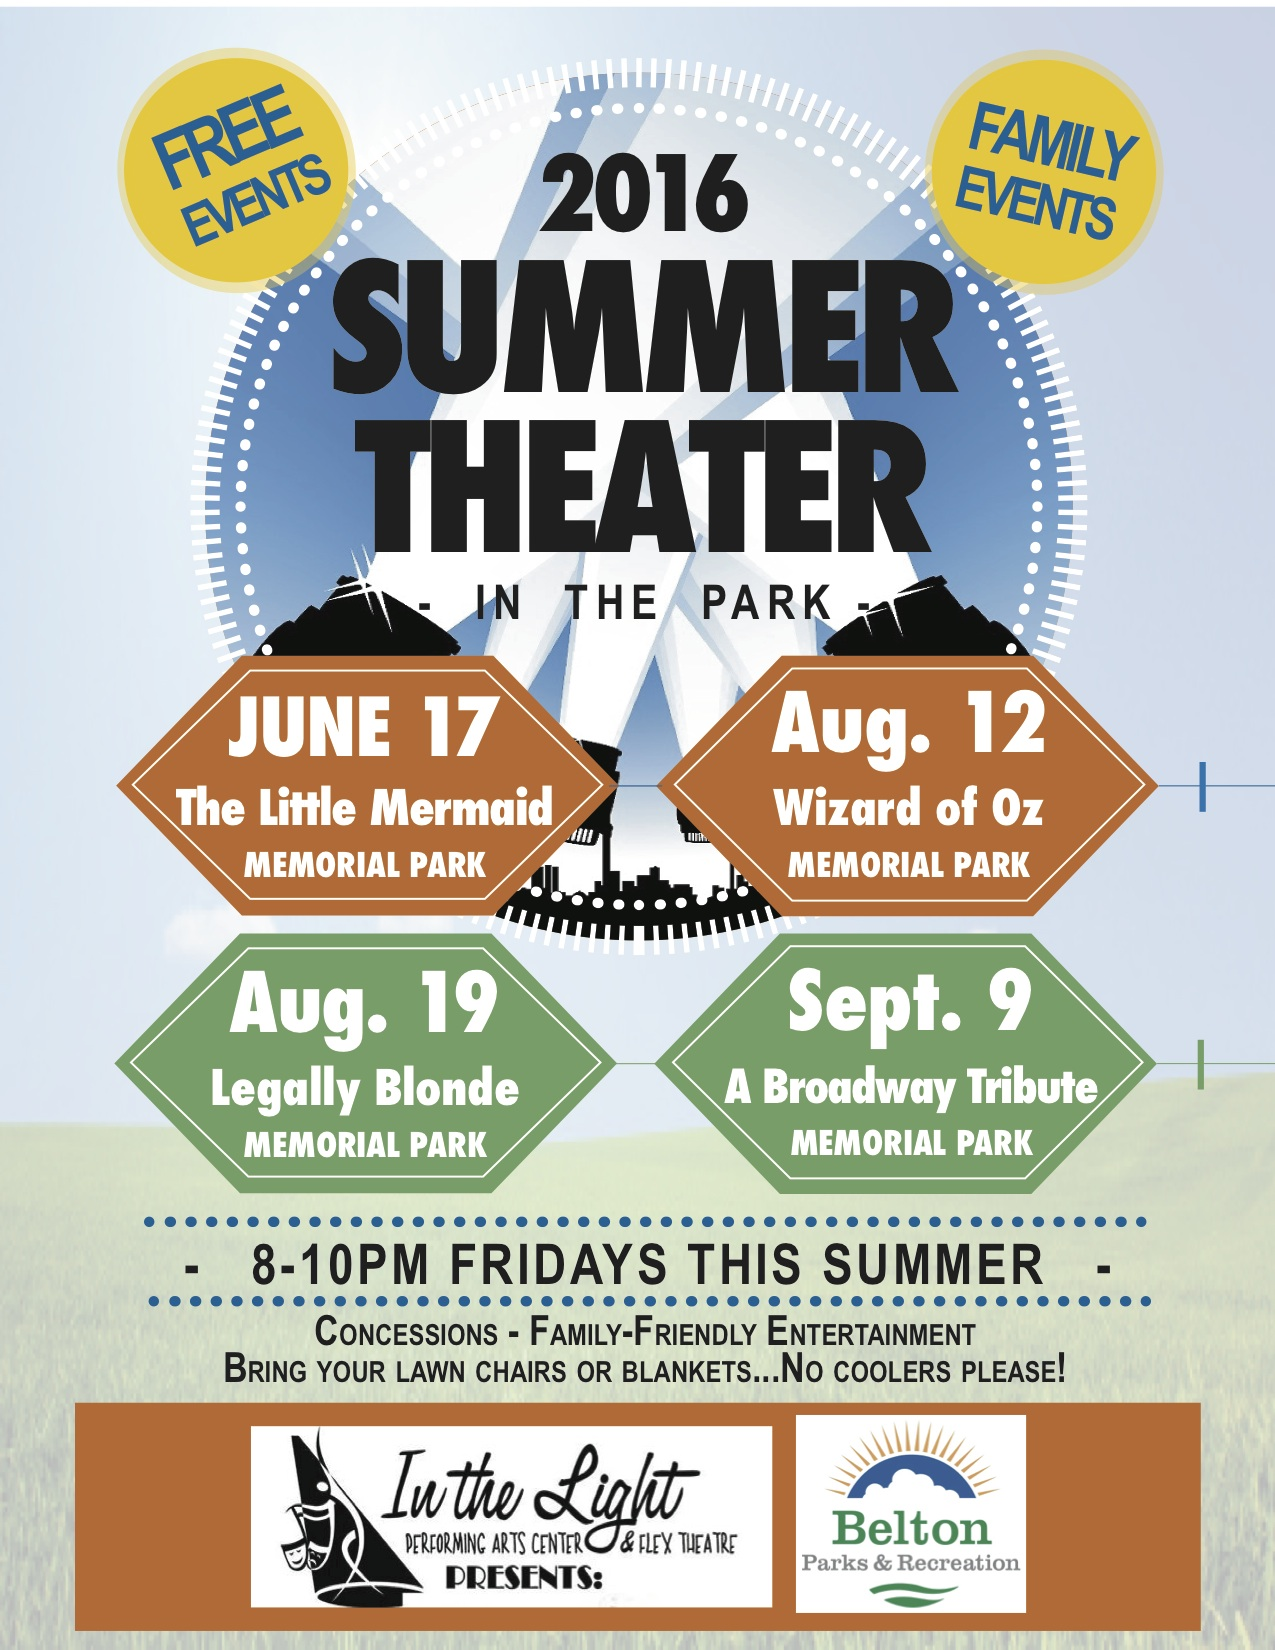 2016 Summer Theater in the Park Flyer.jpg